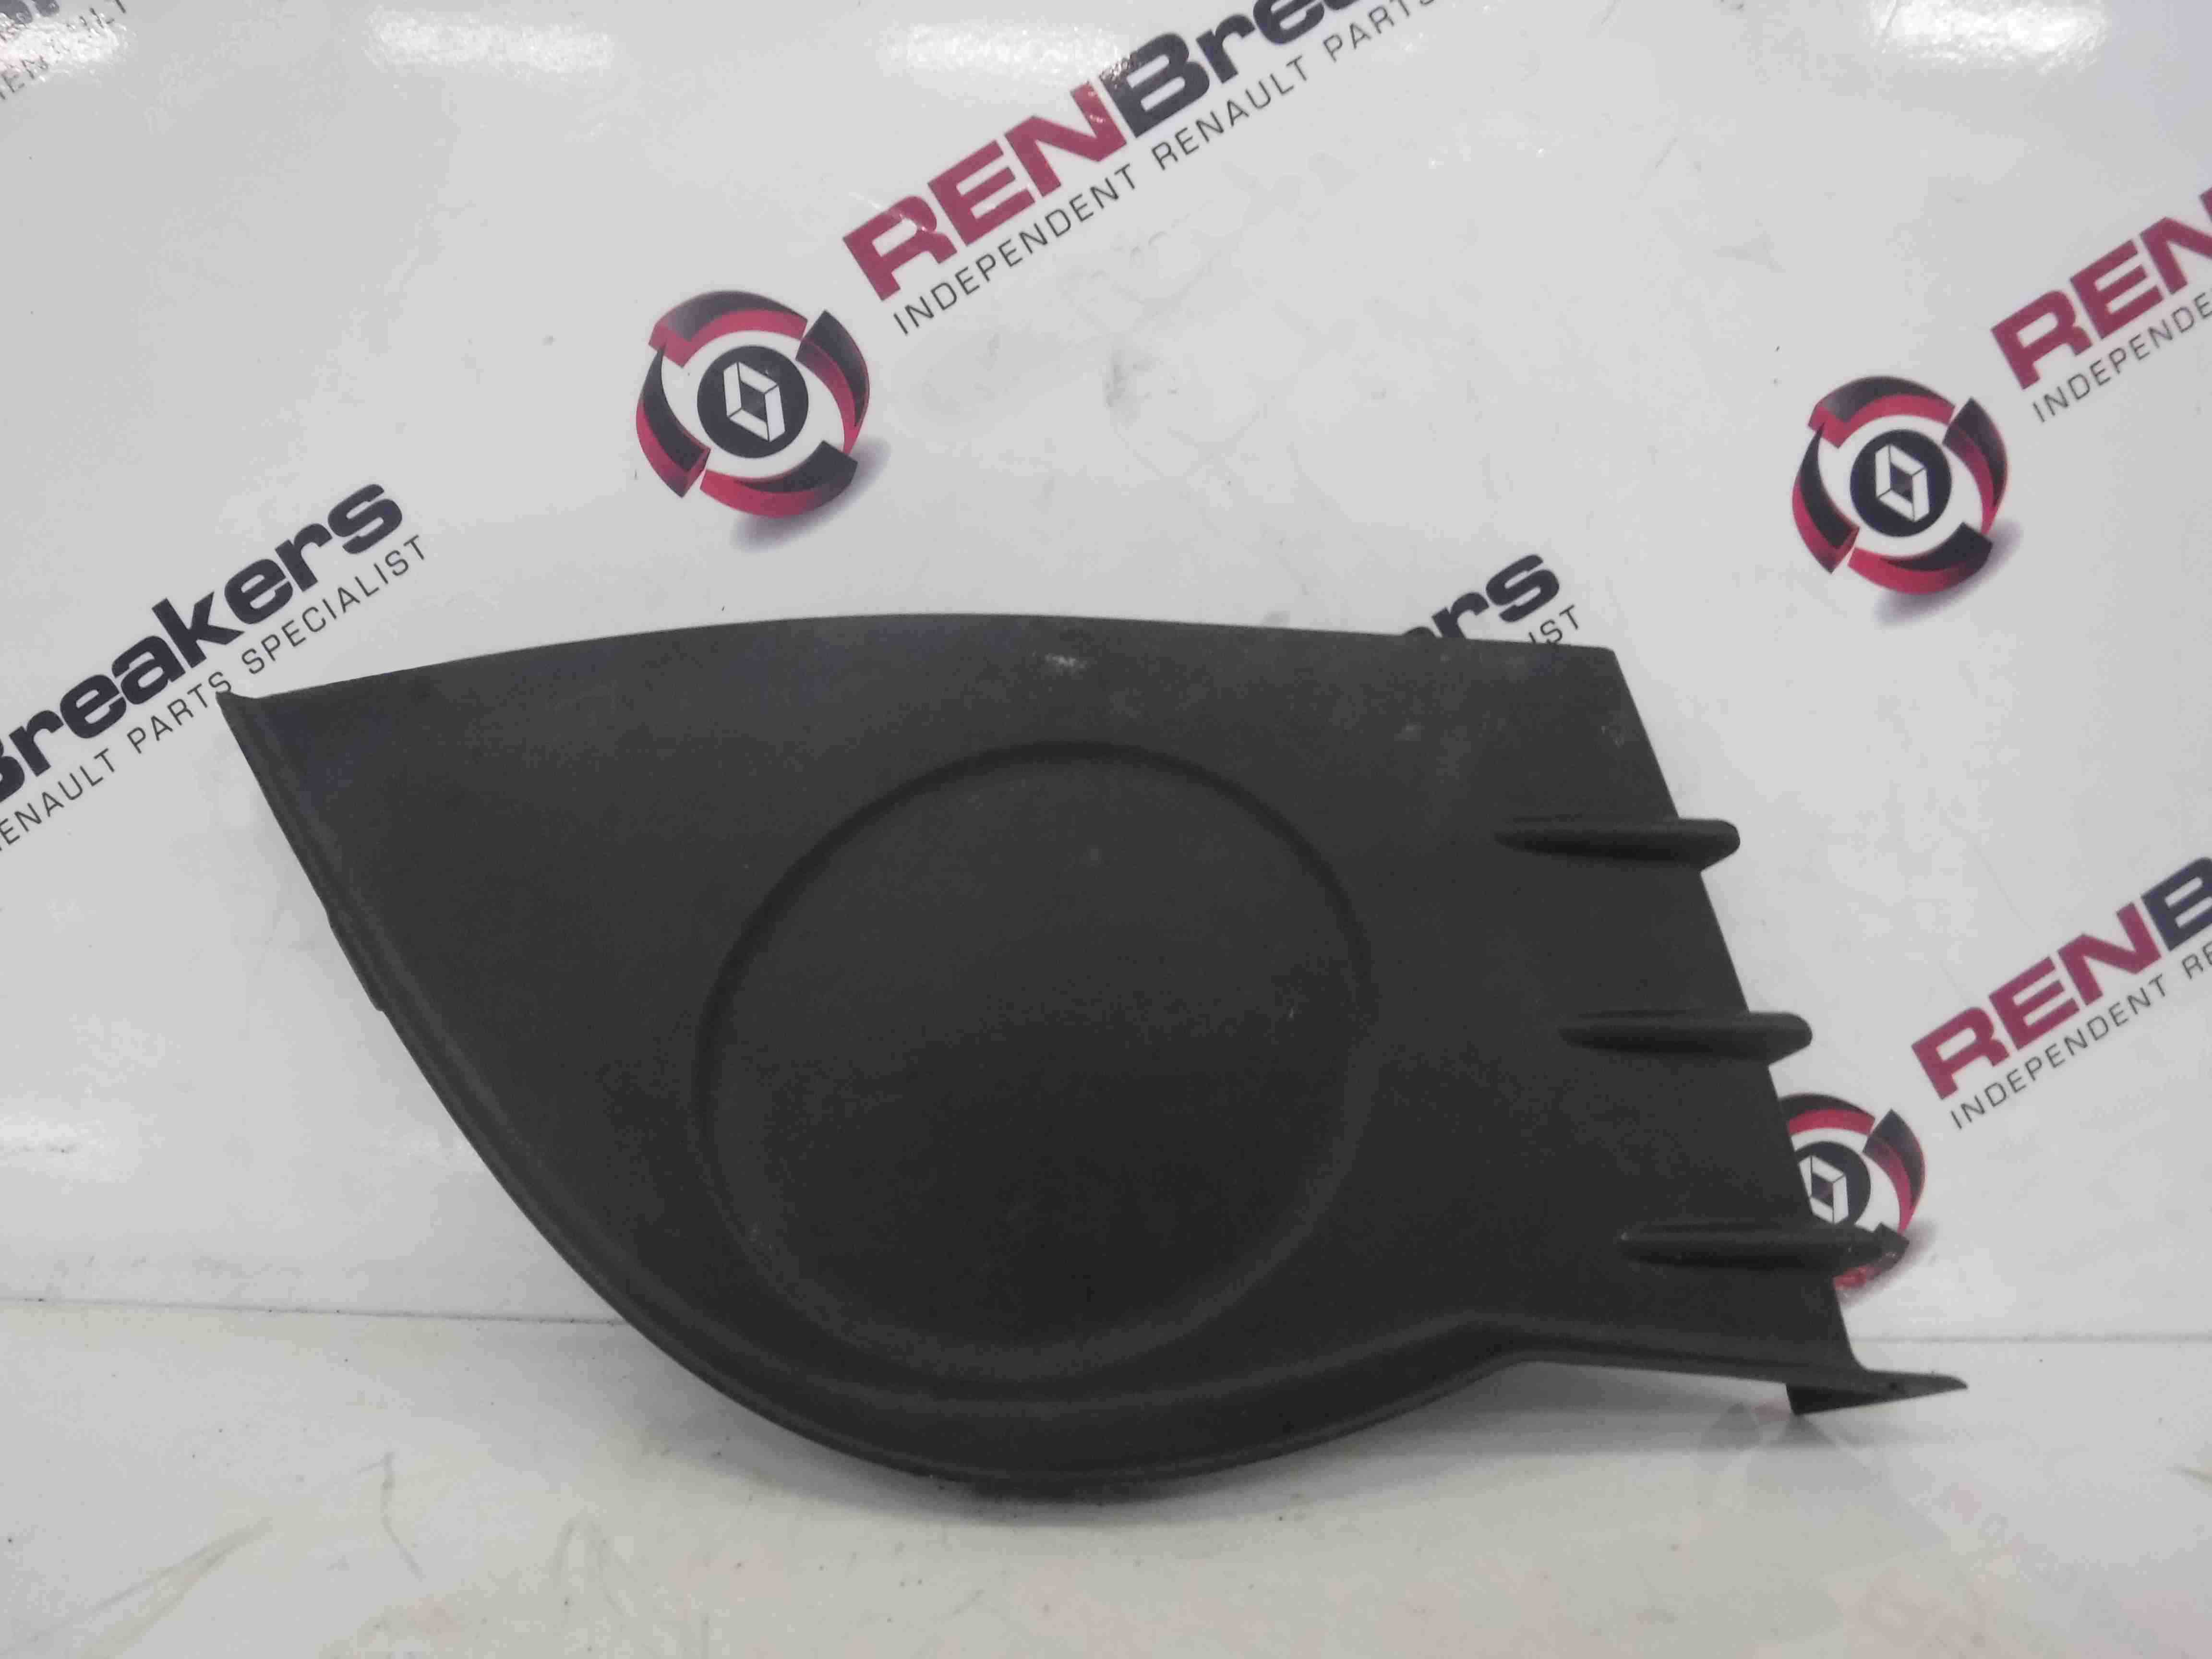 Renault Clio MK3 2005-2009 Drivers OSF Front Bumper Fog Light Cover Trim Insert